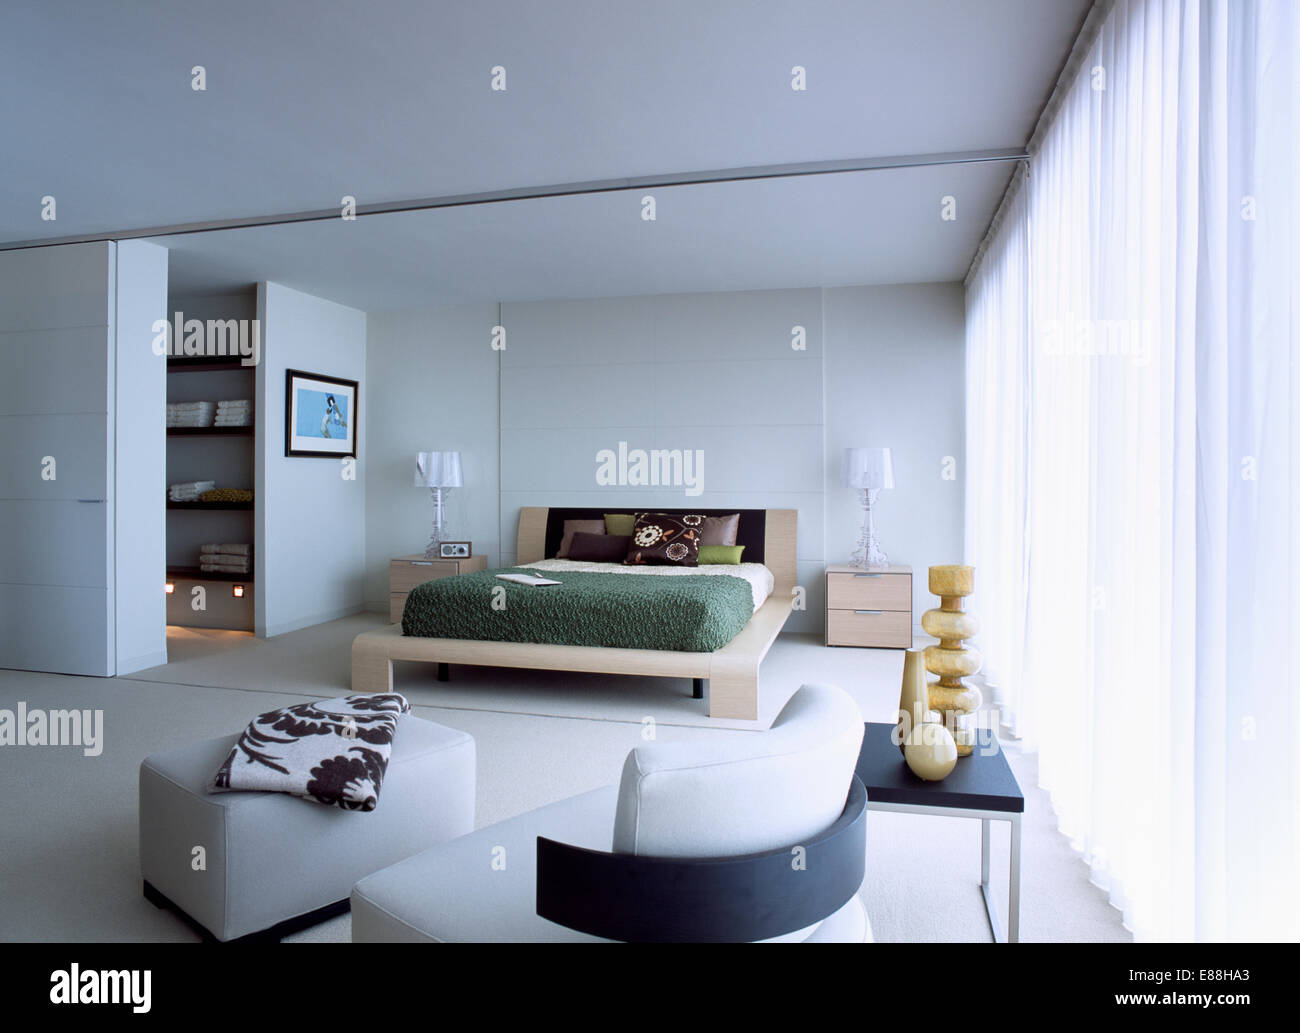 Simple Wooden Bed In Large Modern Bedroom With White Flooring And Leather Chair Stool